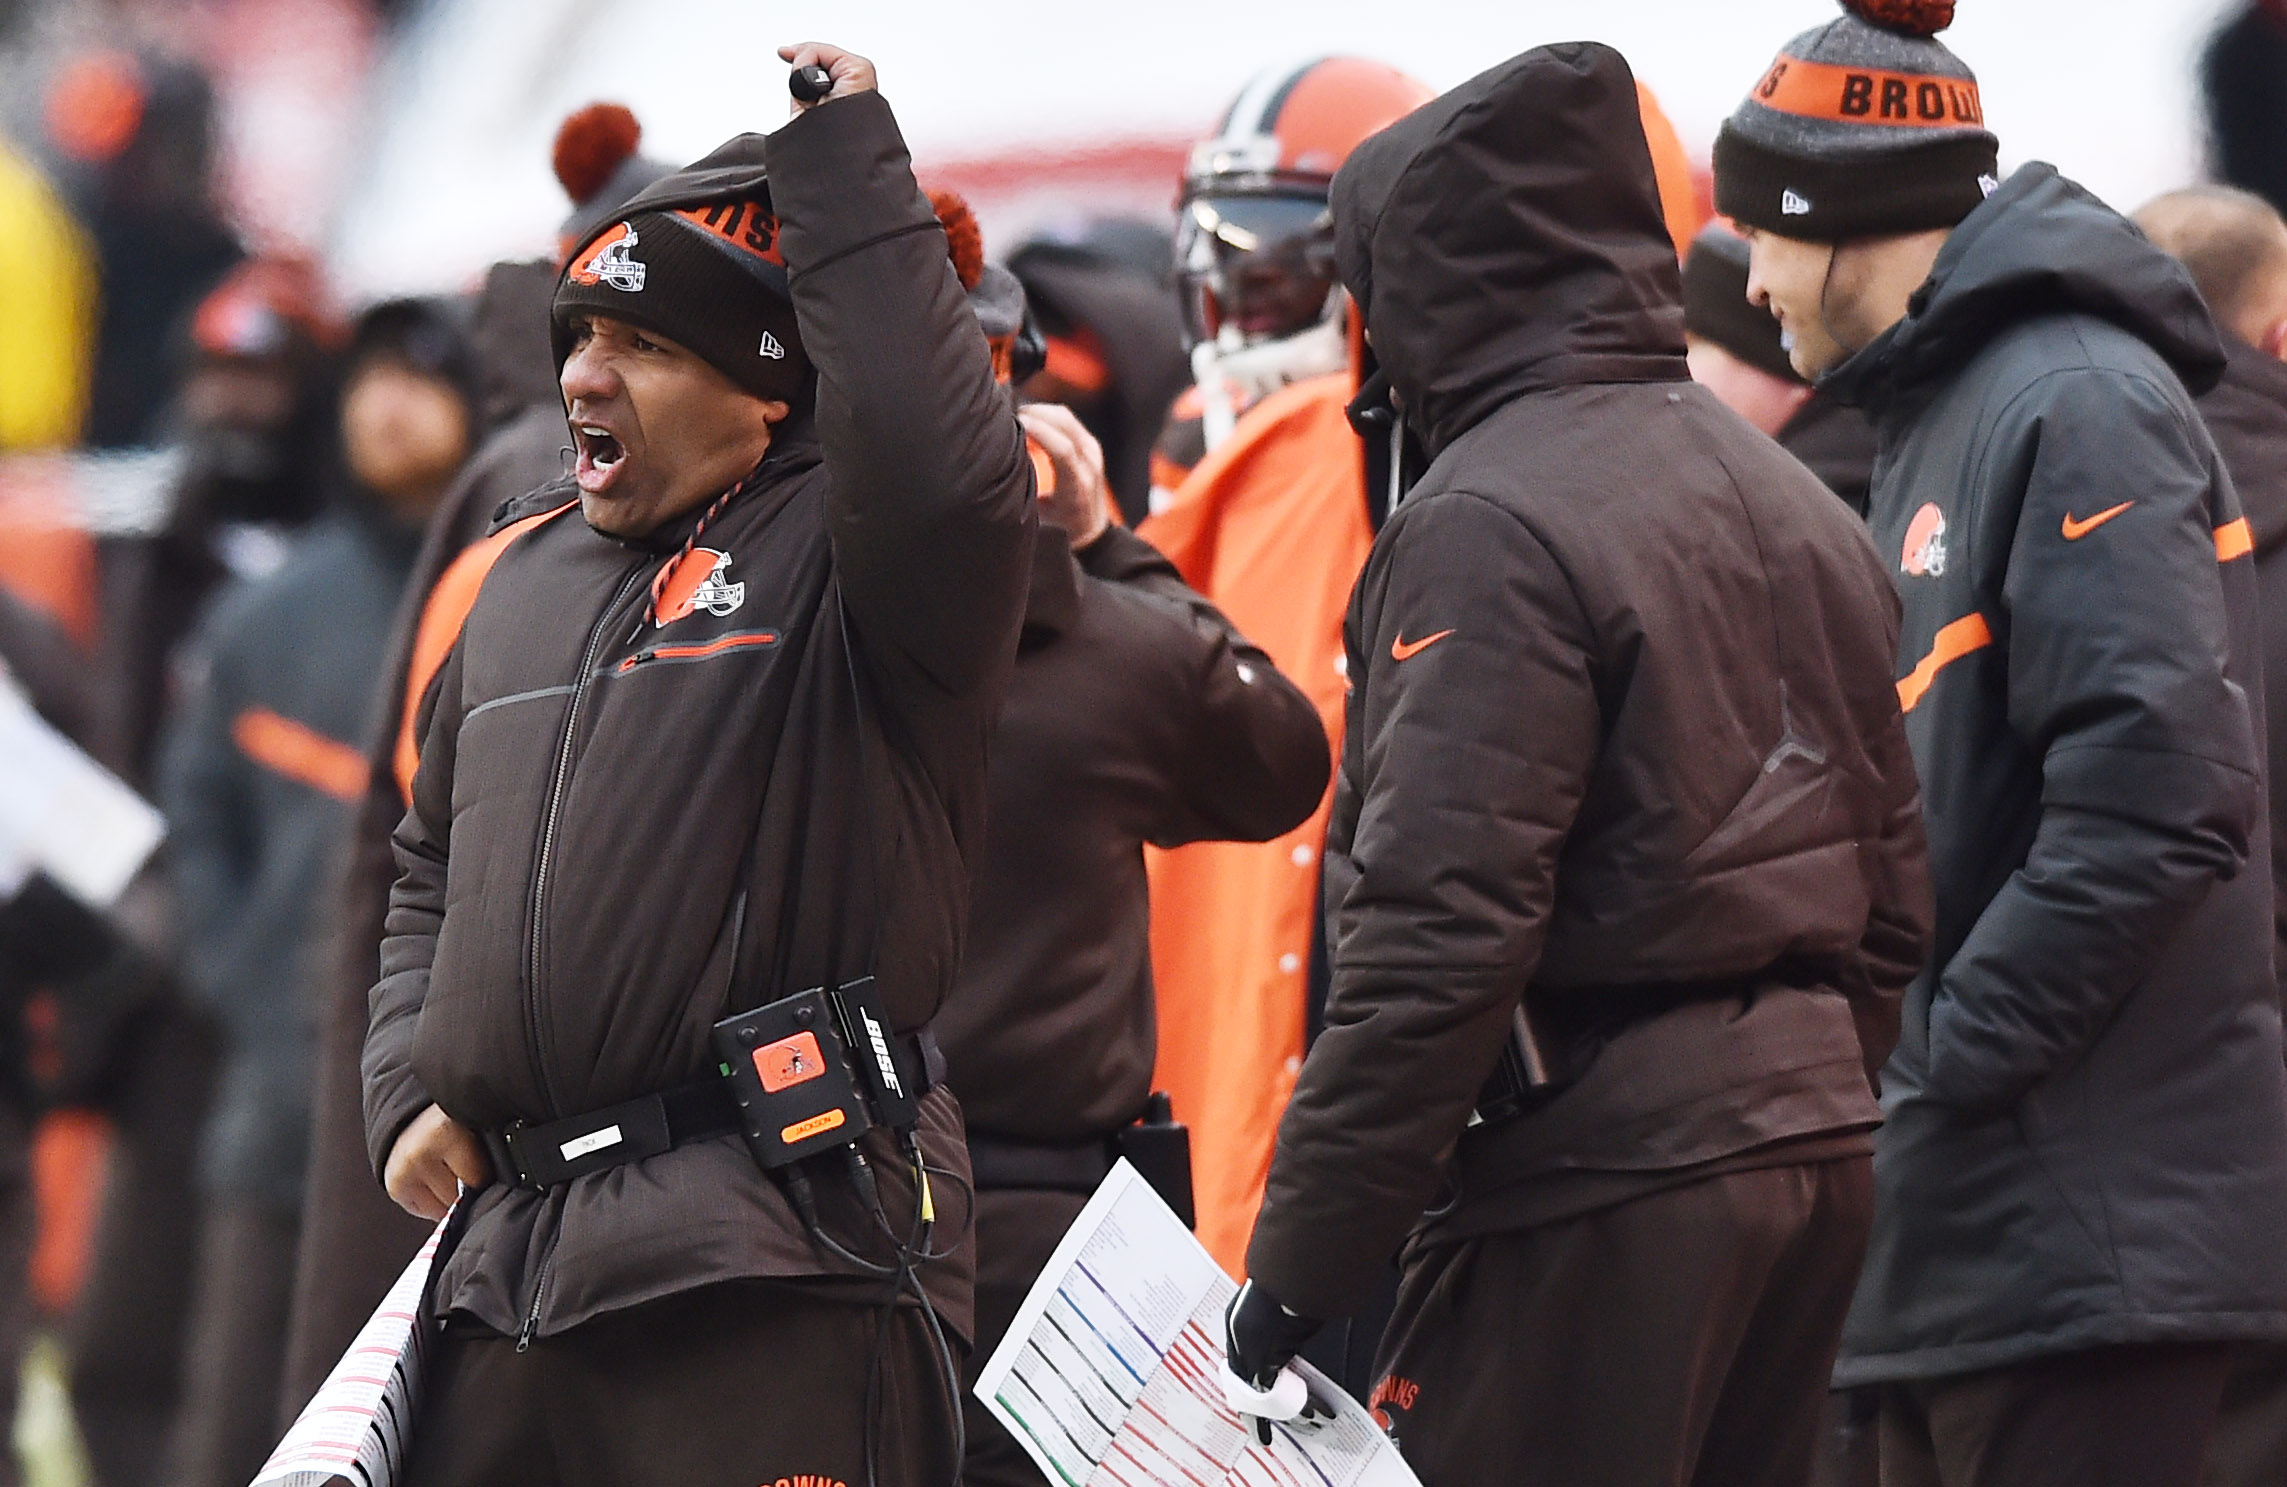 NFL: Cincinnati Bengals at Cleveland Browns